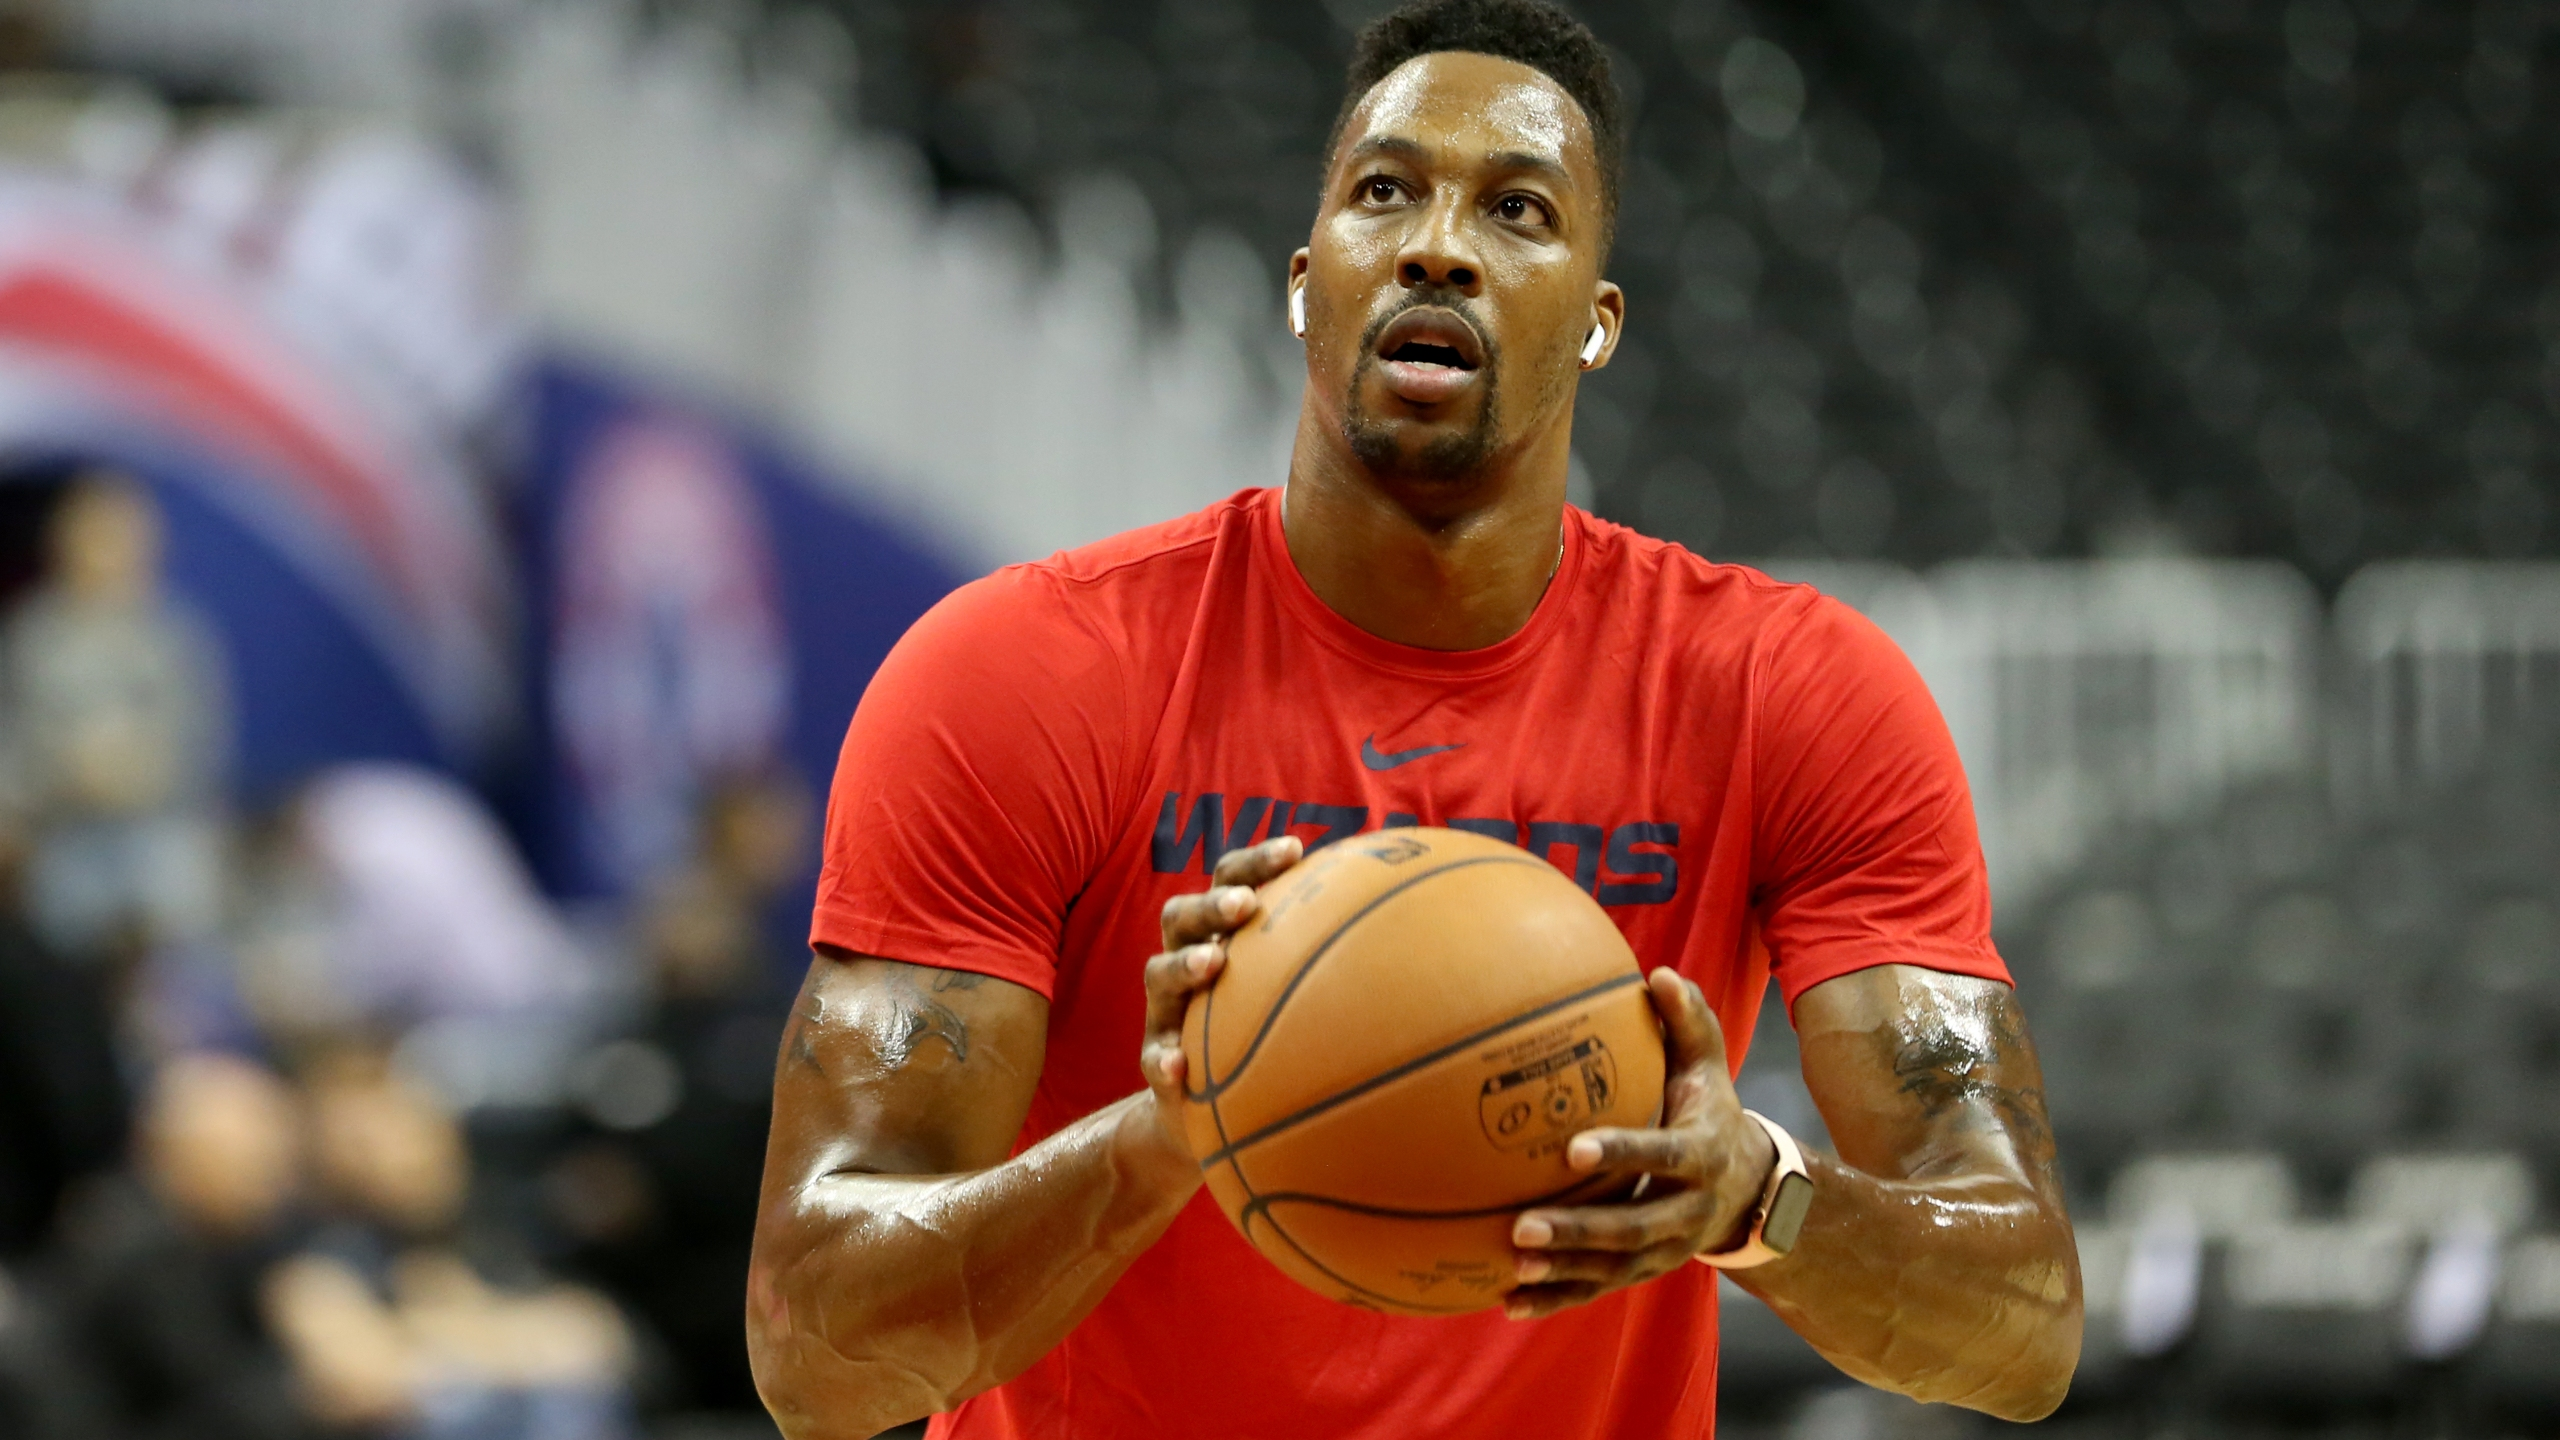 Dwight Howard of the Washington Wizards warms up prior to a preseason NBA game against the Miami Heat in Washington, D.C., on Oct. 5, 2018. (Credit: Will Newton / Getty Images)